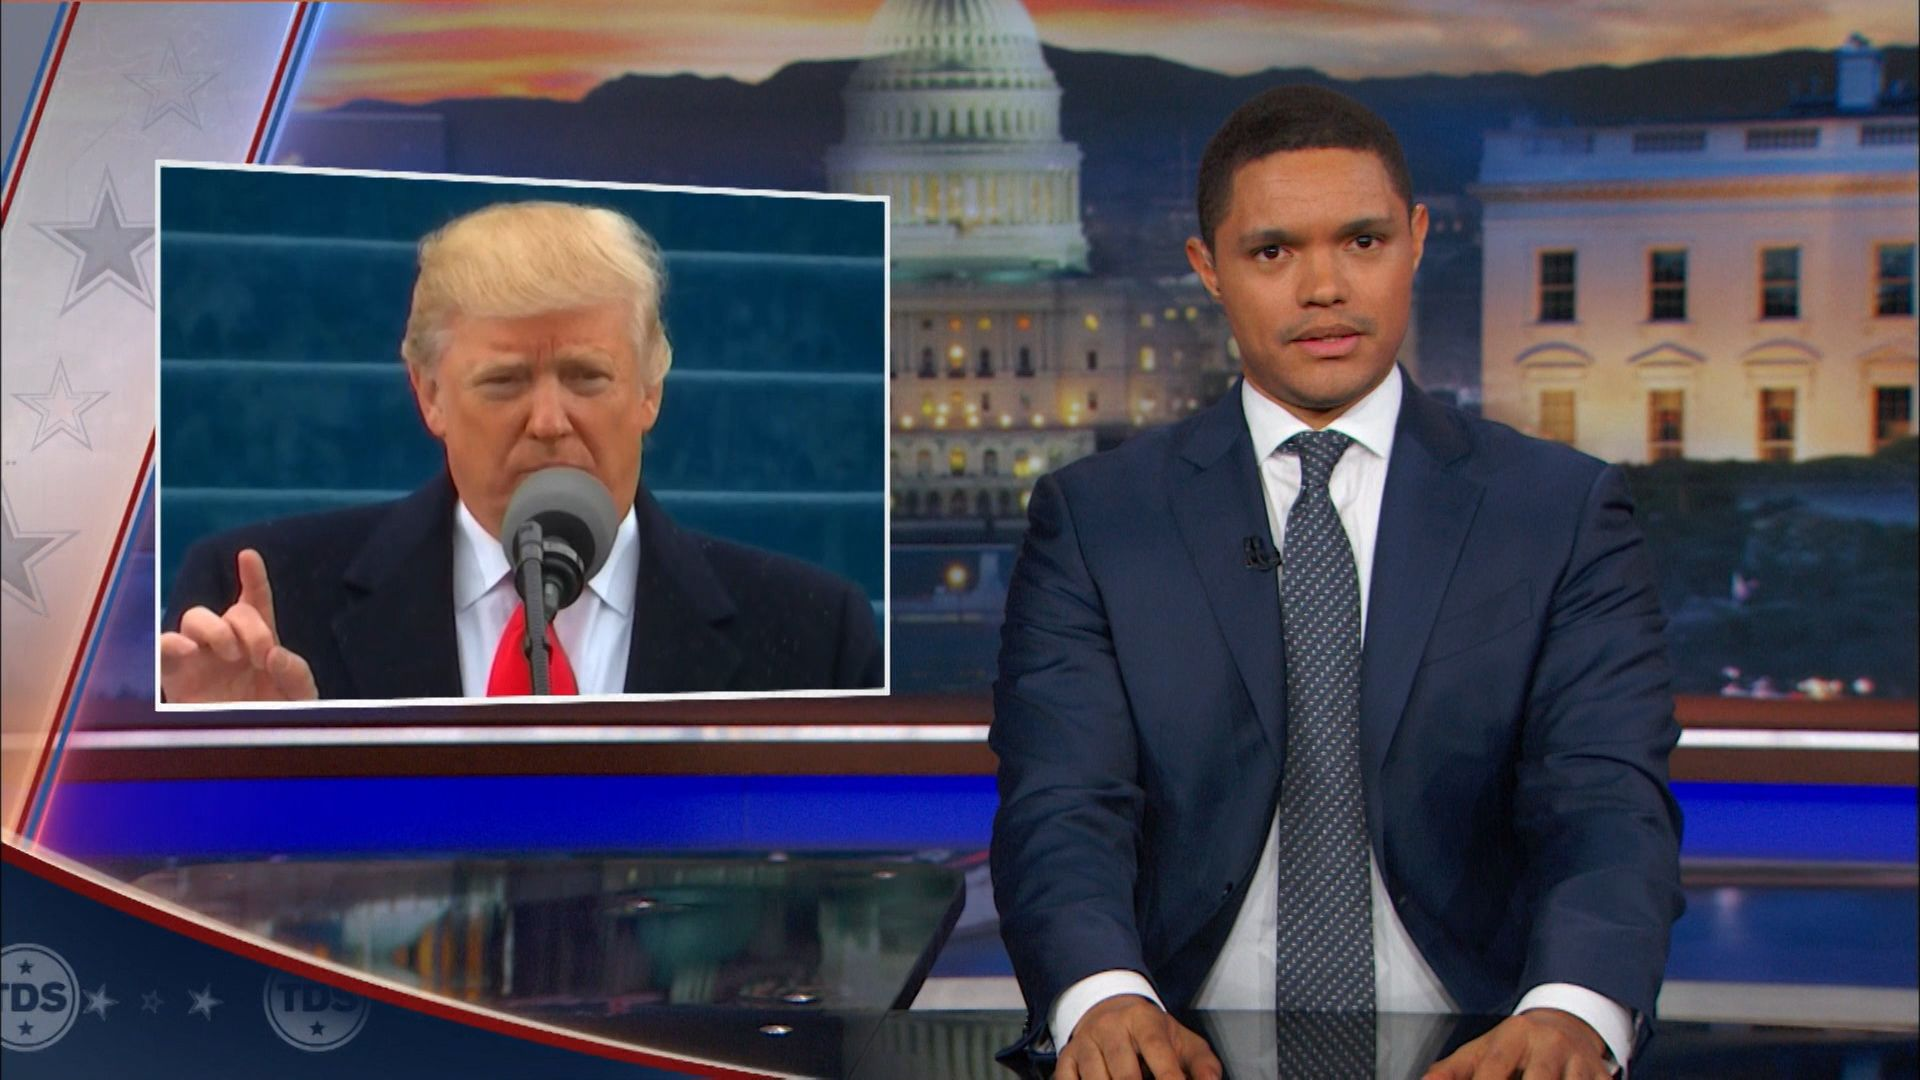 The Inauguration of Donald Trump - The Daily Show with Trevor Noah (Video Clip)